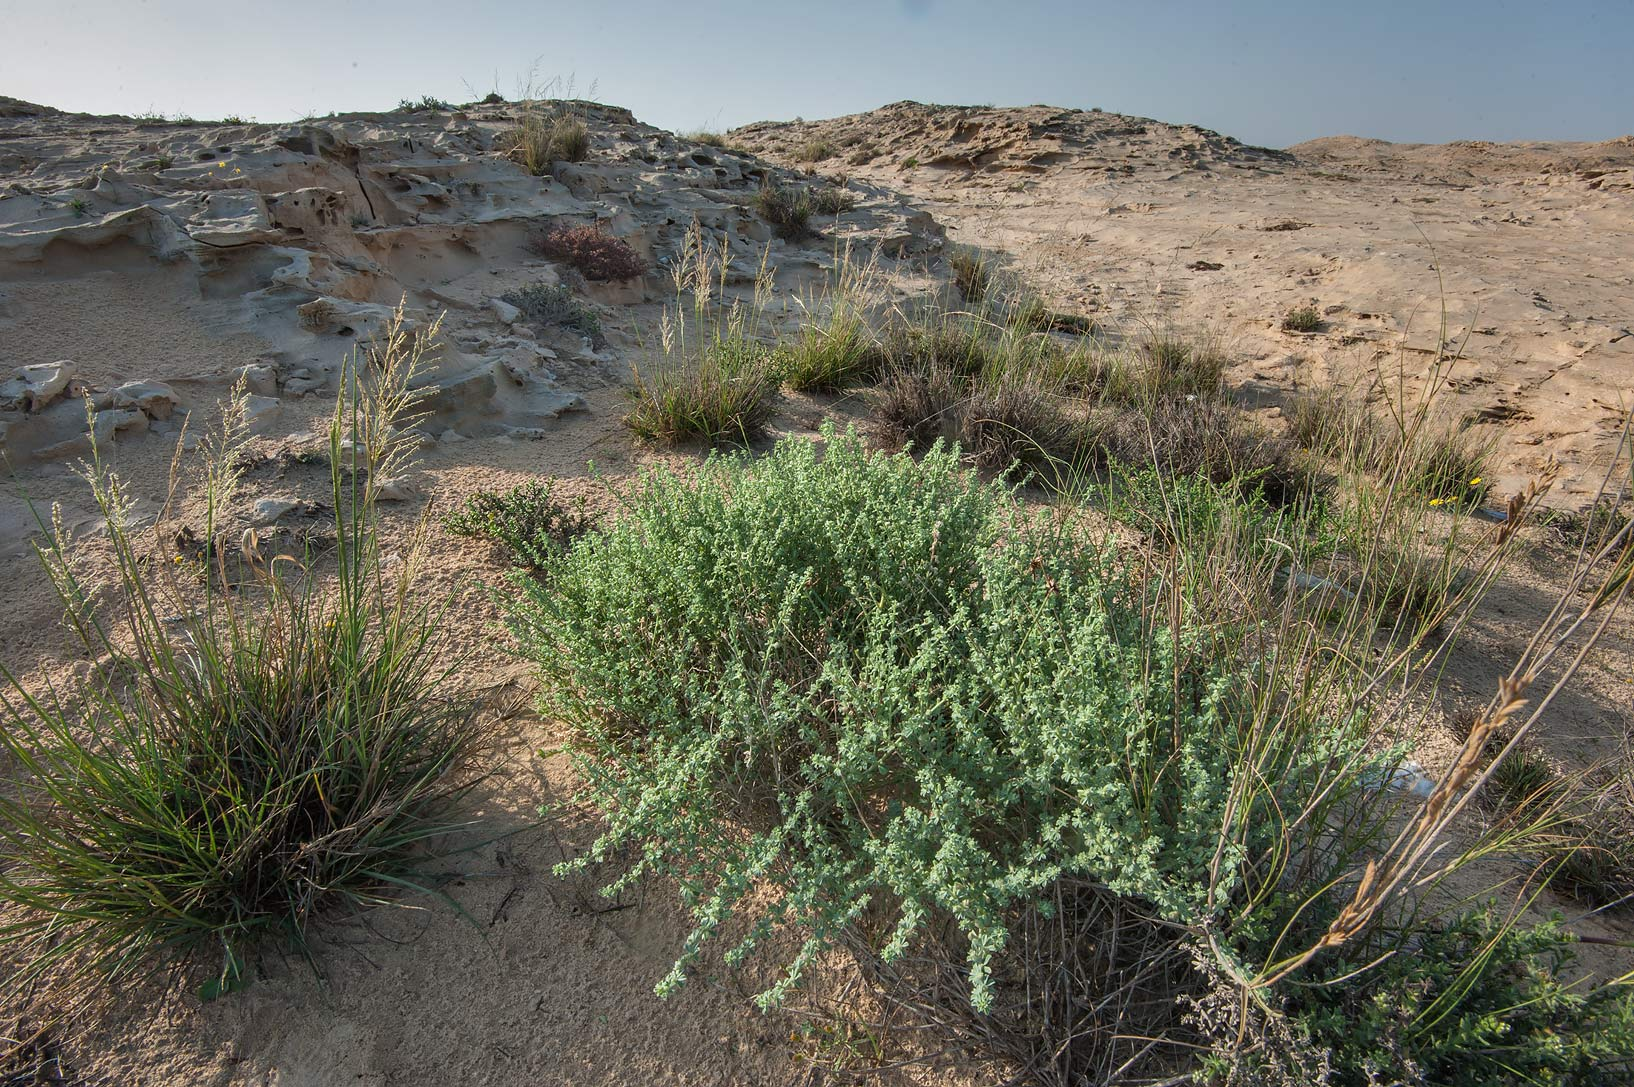 Habitat of Lotus garcinii plants on a rocky ridge of Jebel Fuwairit. Northern Qatar